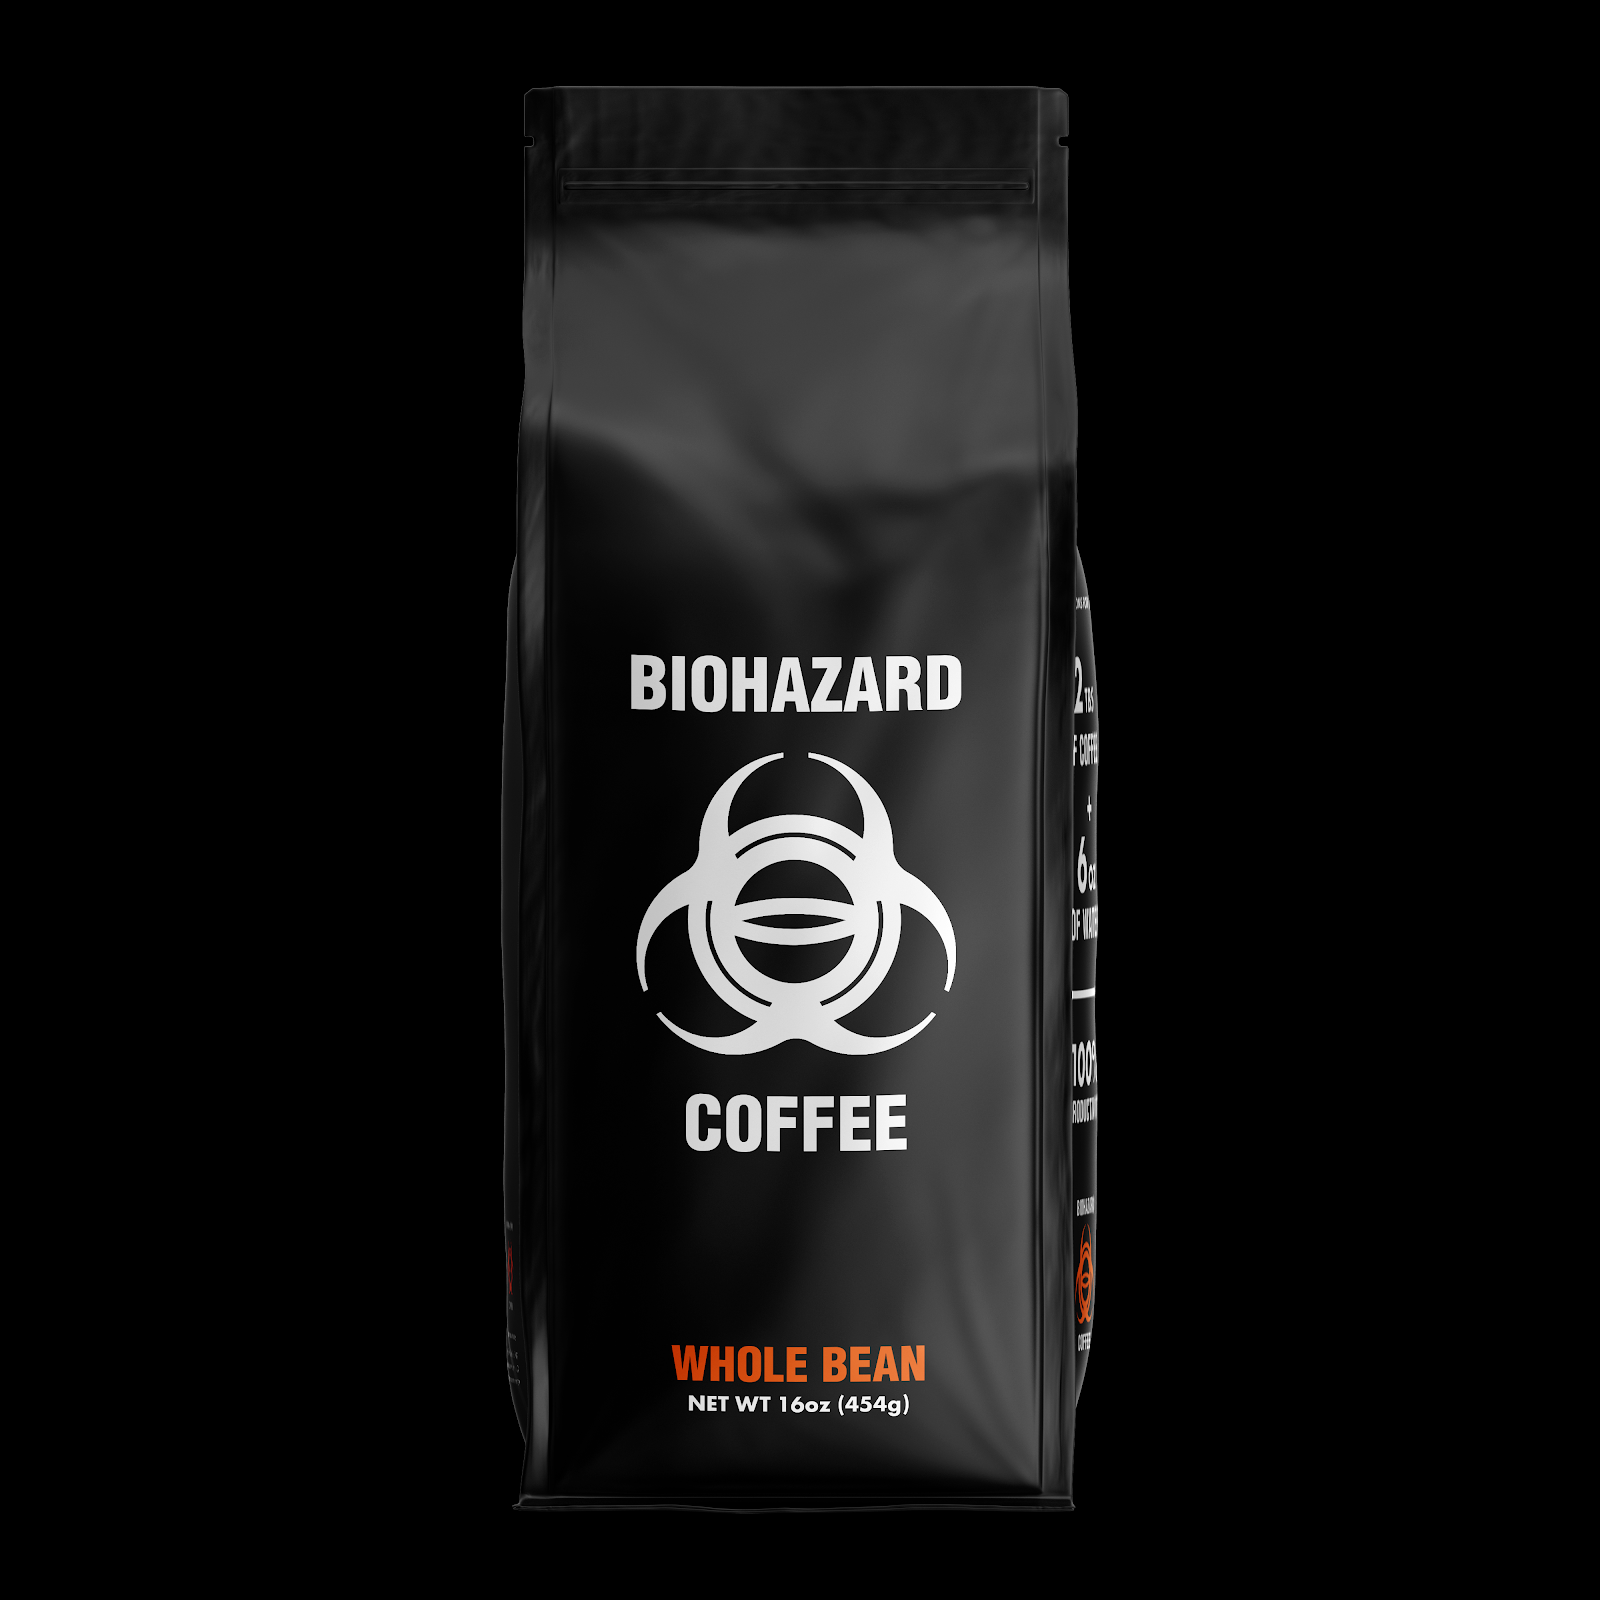 Biohazard Coffee World's Strongest Coffee 1lb whole bean bag World's Strongest Store Bought Coffee Brands